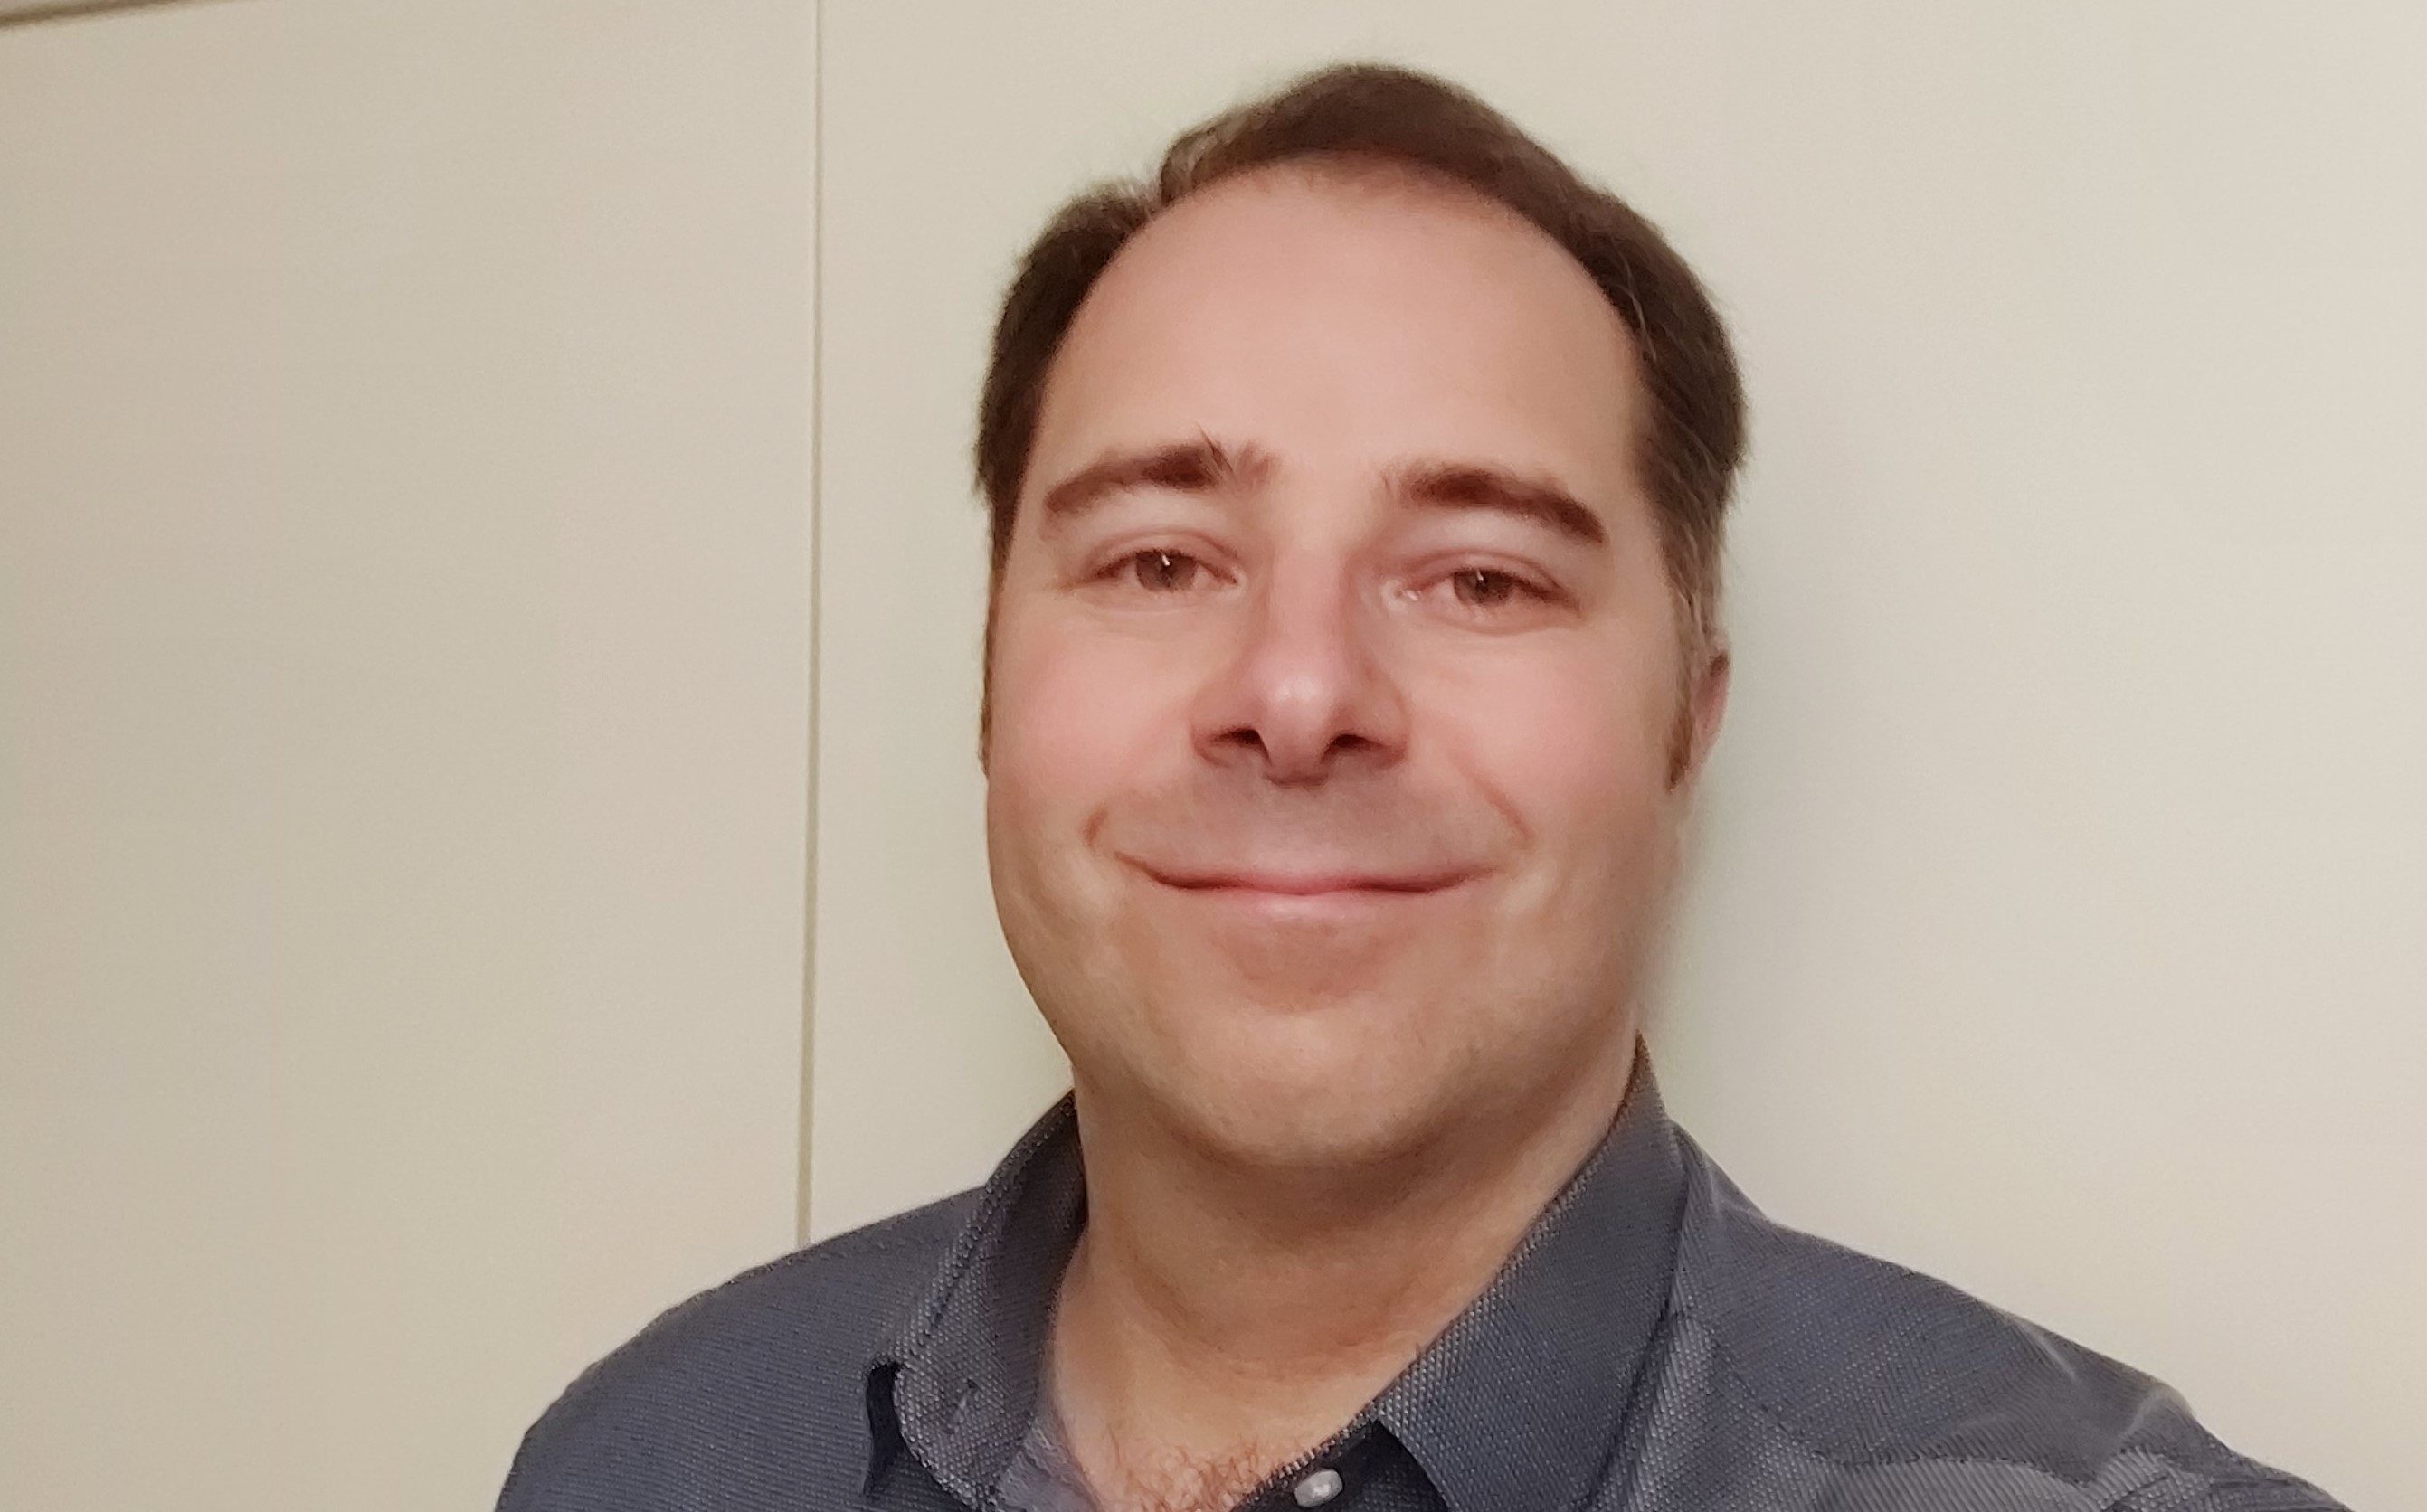 CKF Systems welcomes Richard Quinton as Project Engineer